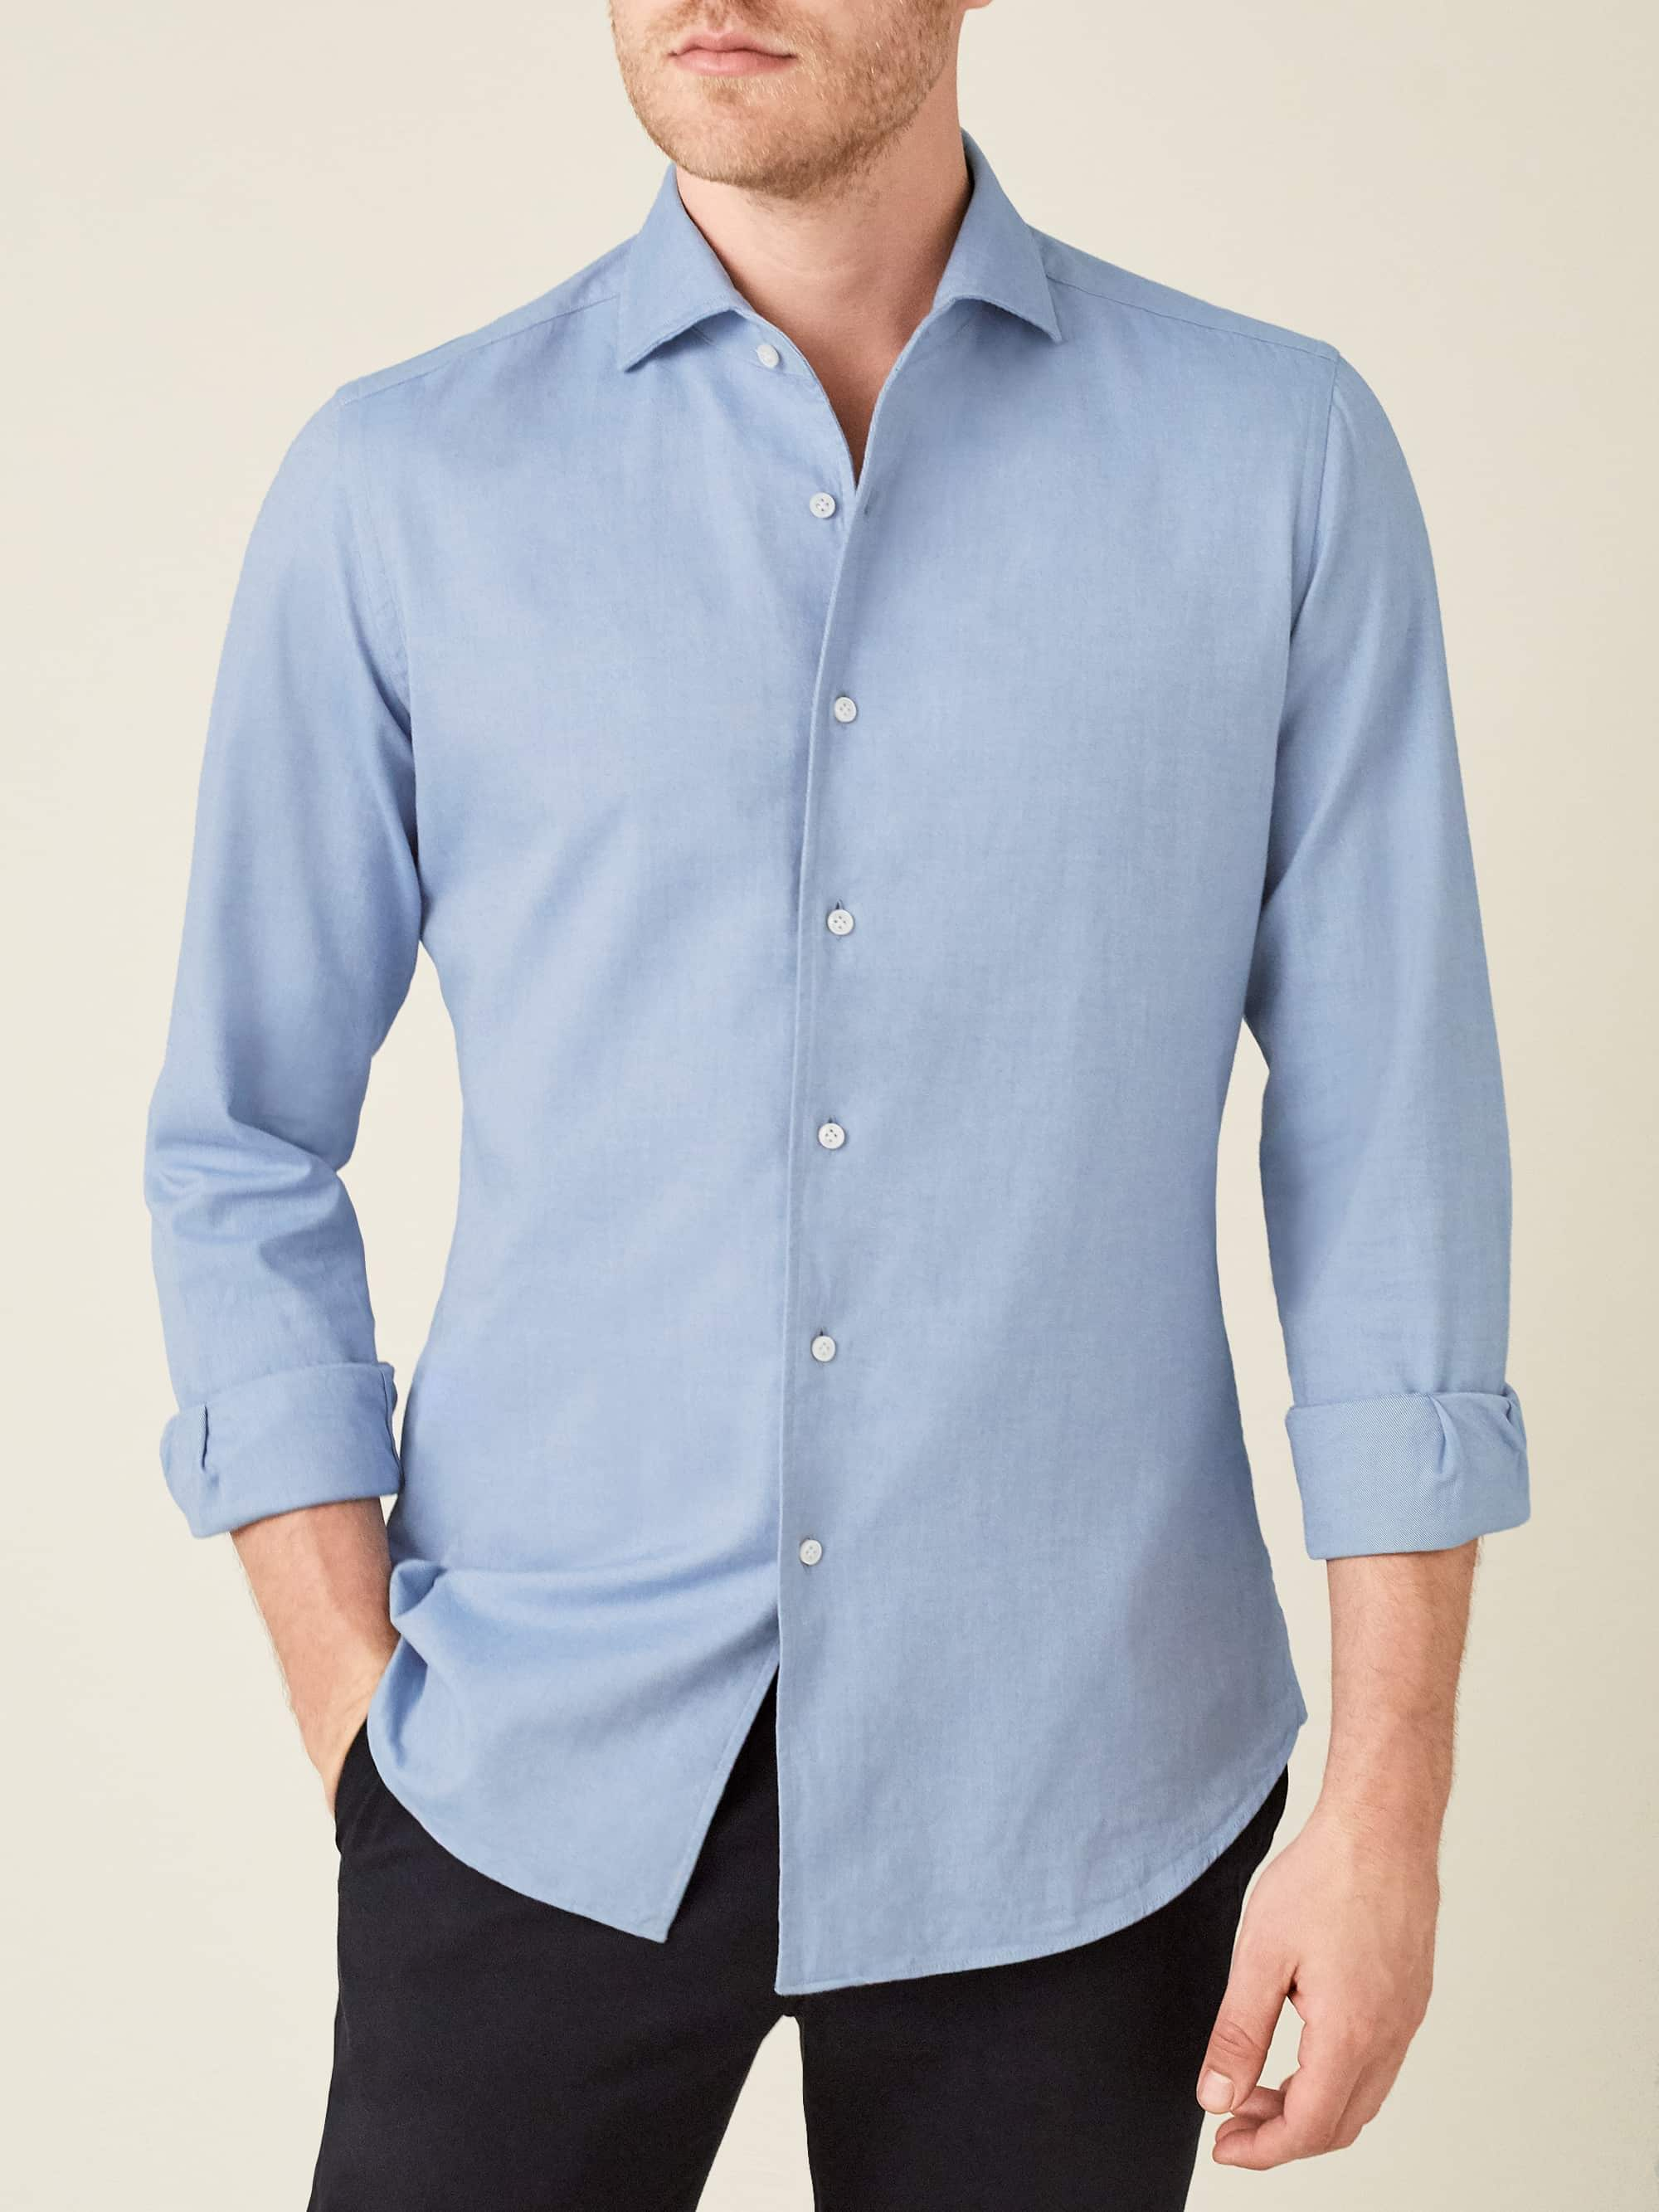 Luca Faloni Light Blue Brushed Cotton Made in Italy